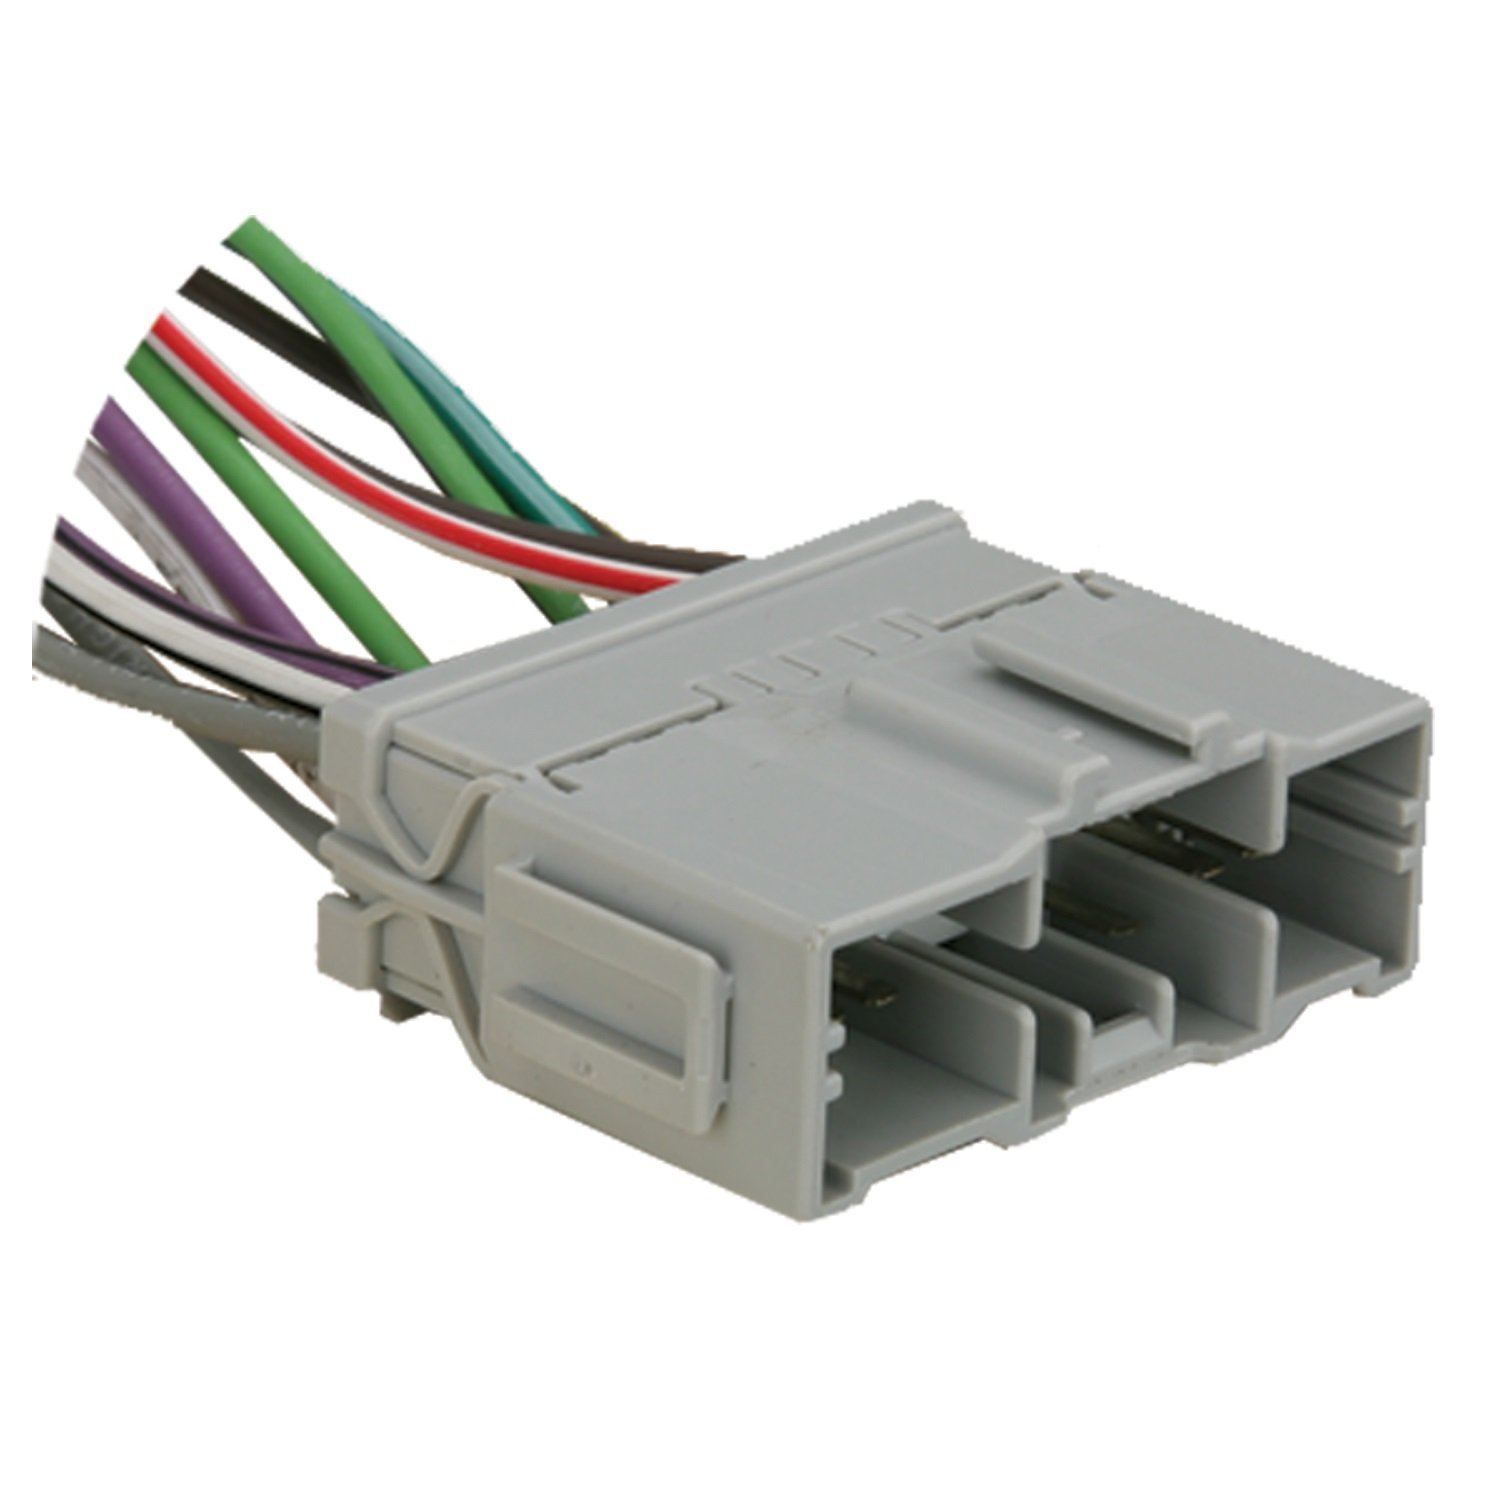 61pZk8cVuYL._SL1500_ amazon com metra 70 1726 wiring harness for 2003 honda element  at reclaimingppi.co